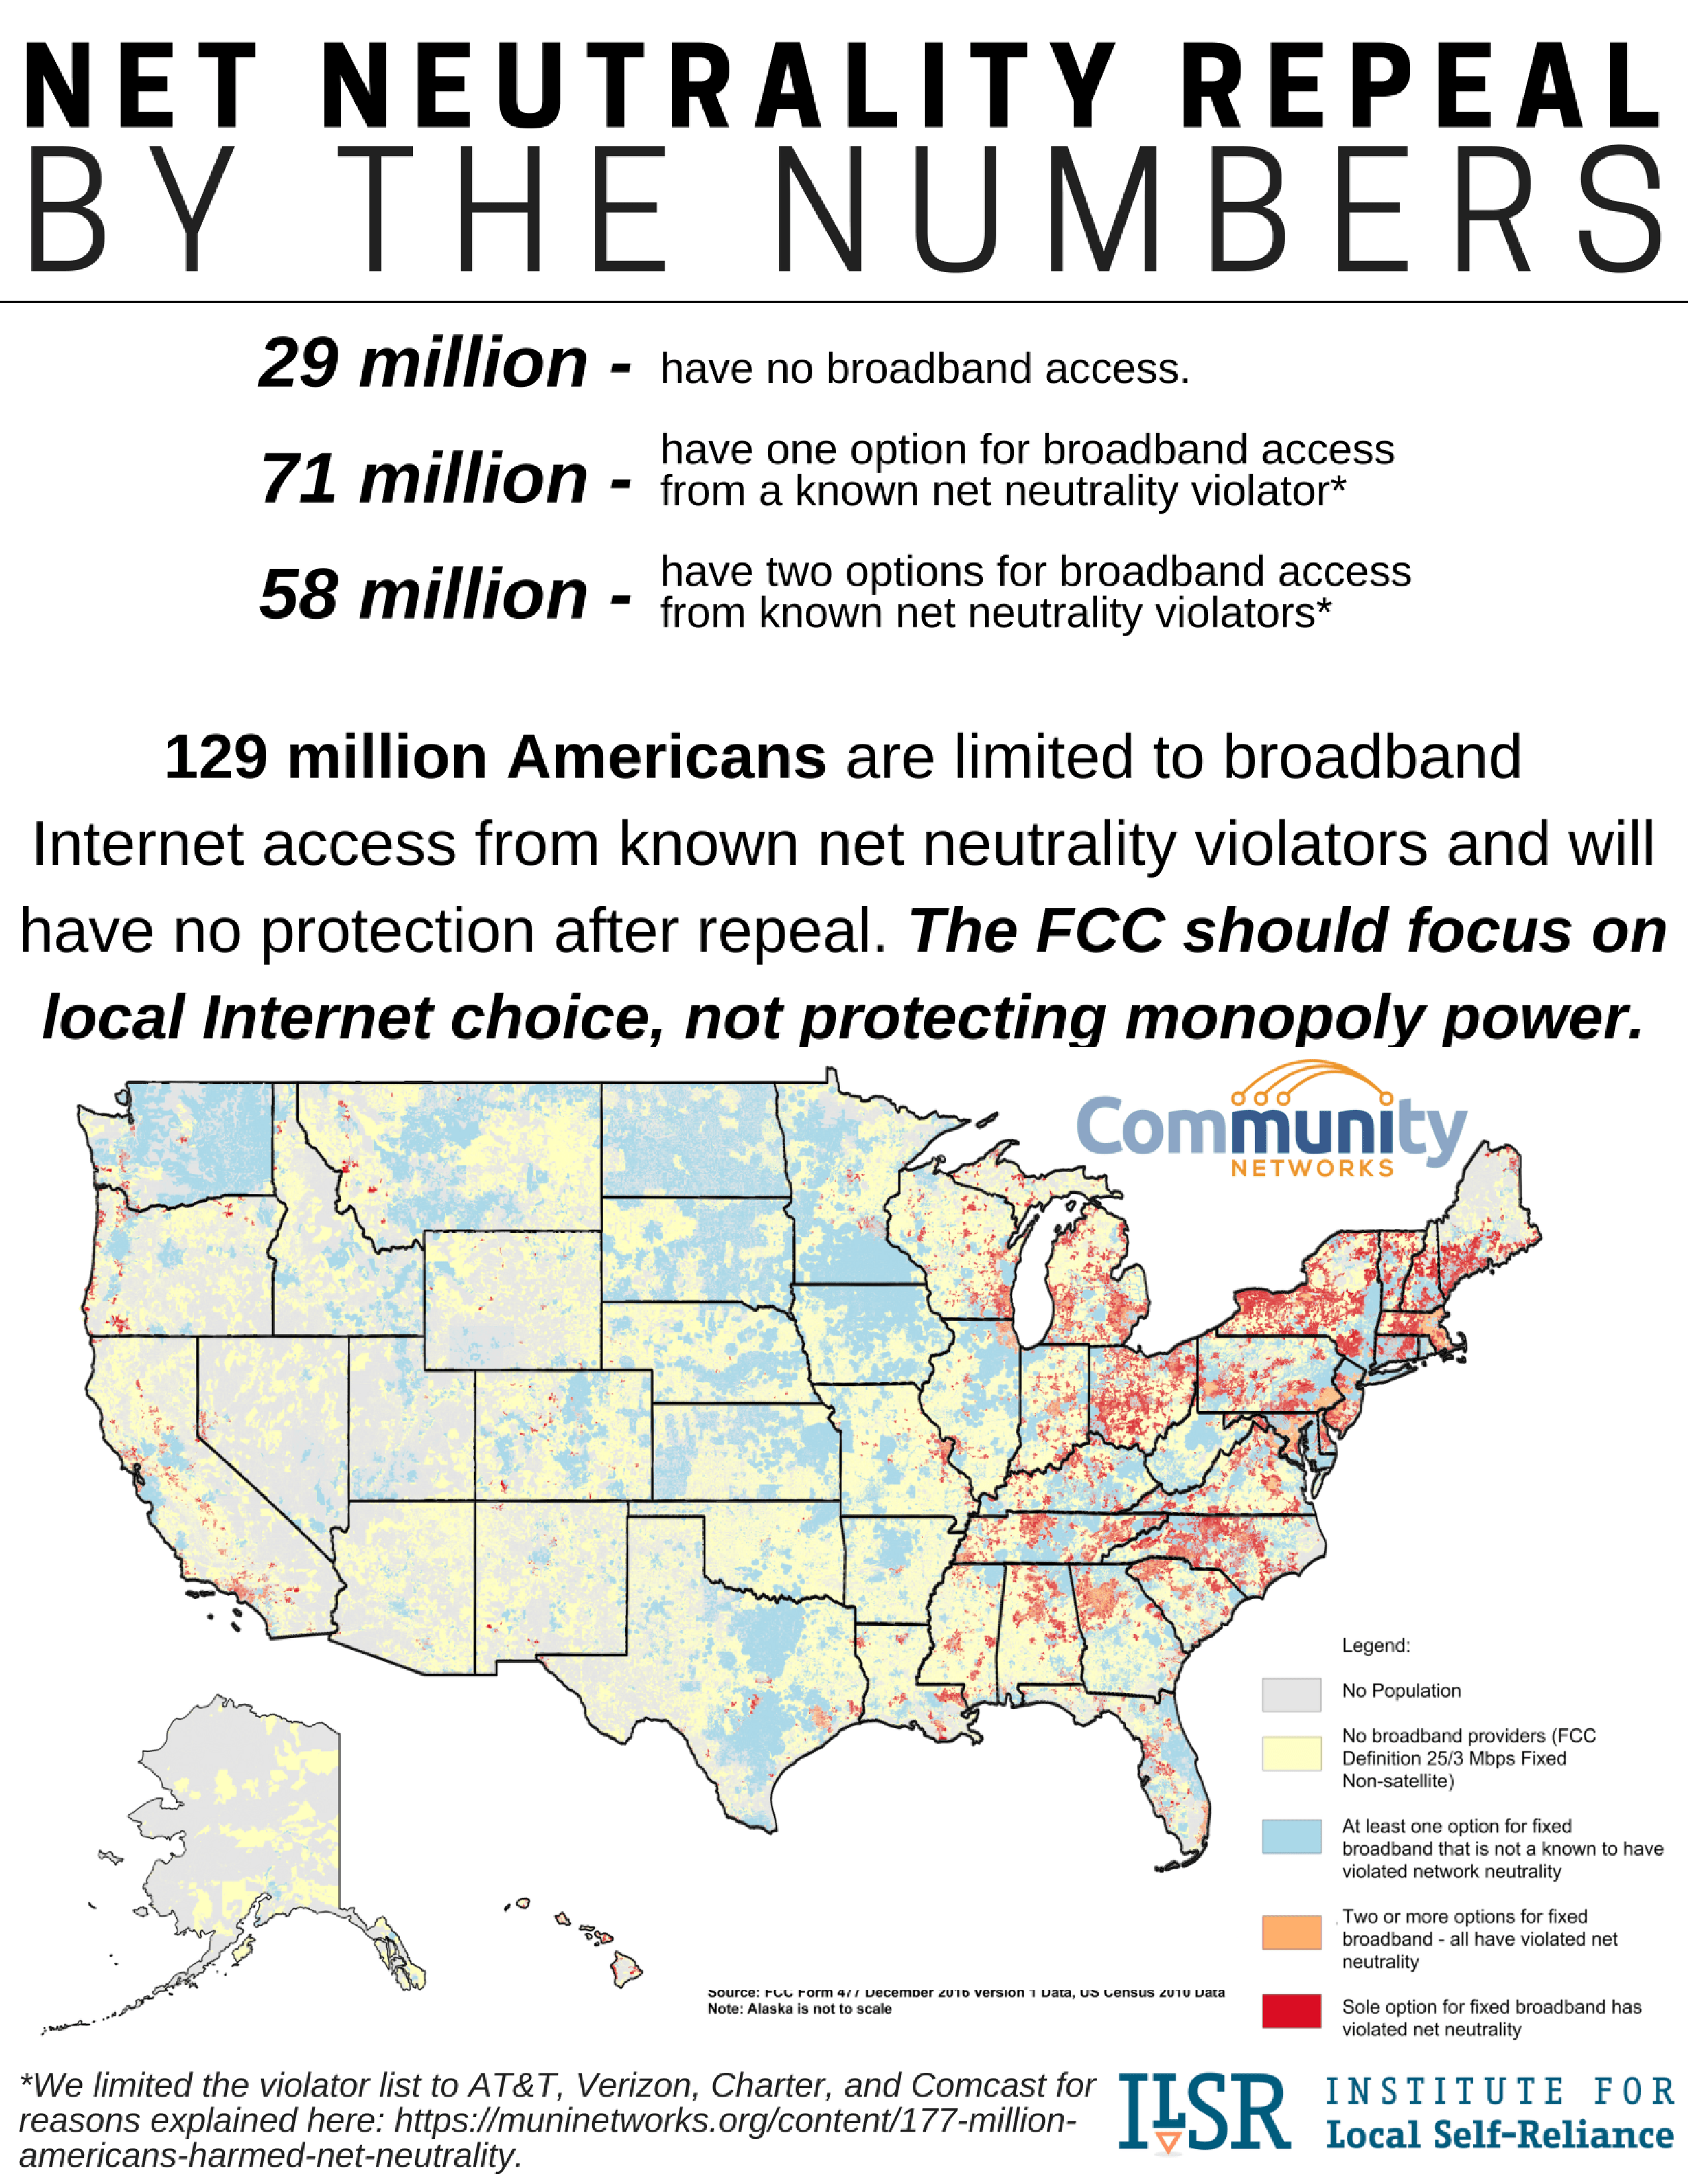 Net Neutrality Repeal Fact Sheets: By The Numbers Maps And Data